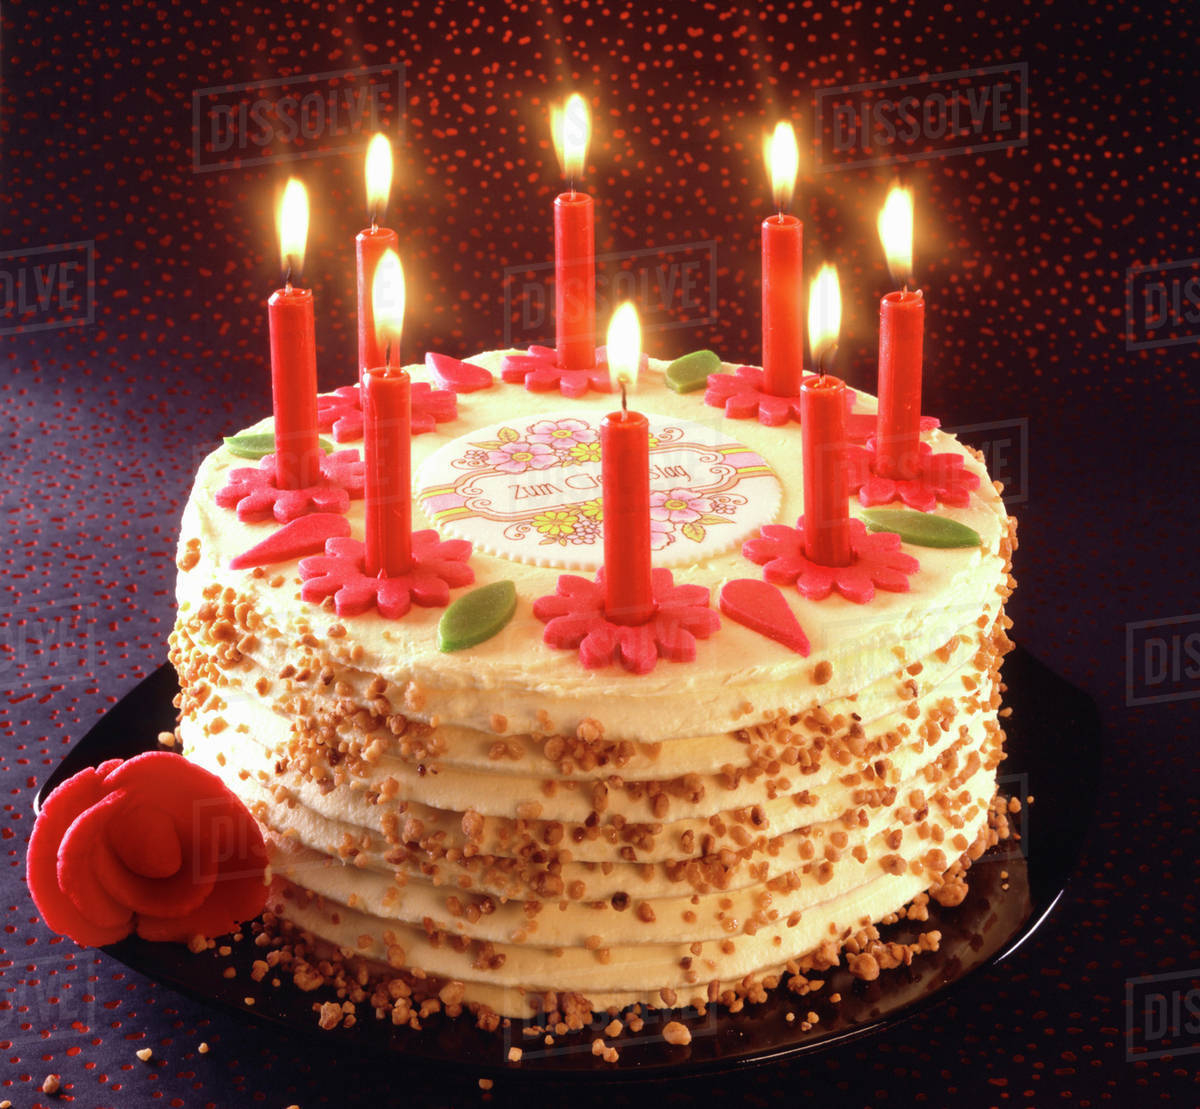 Birthday Cakes With Candles Birthday Cake With Burning Candles Stock Photo Dissolve